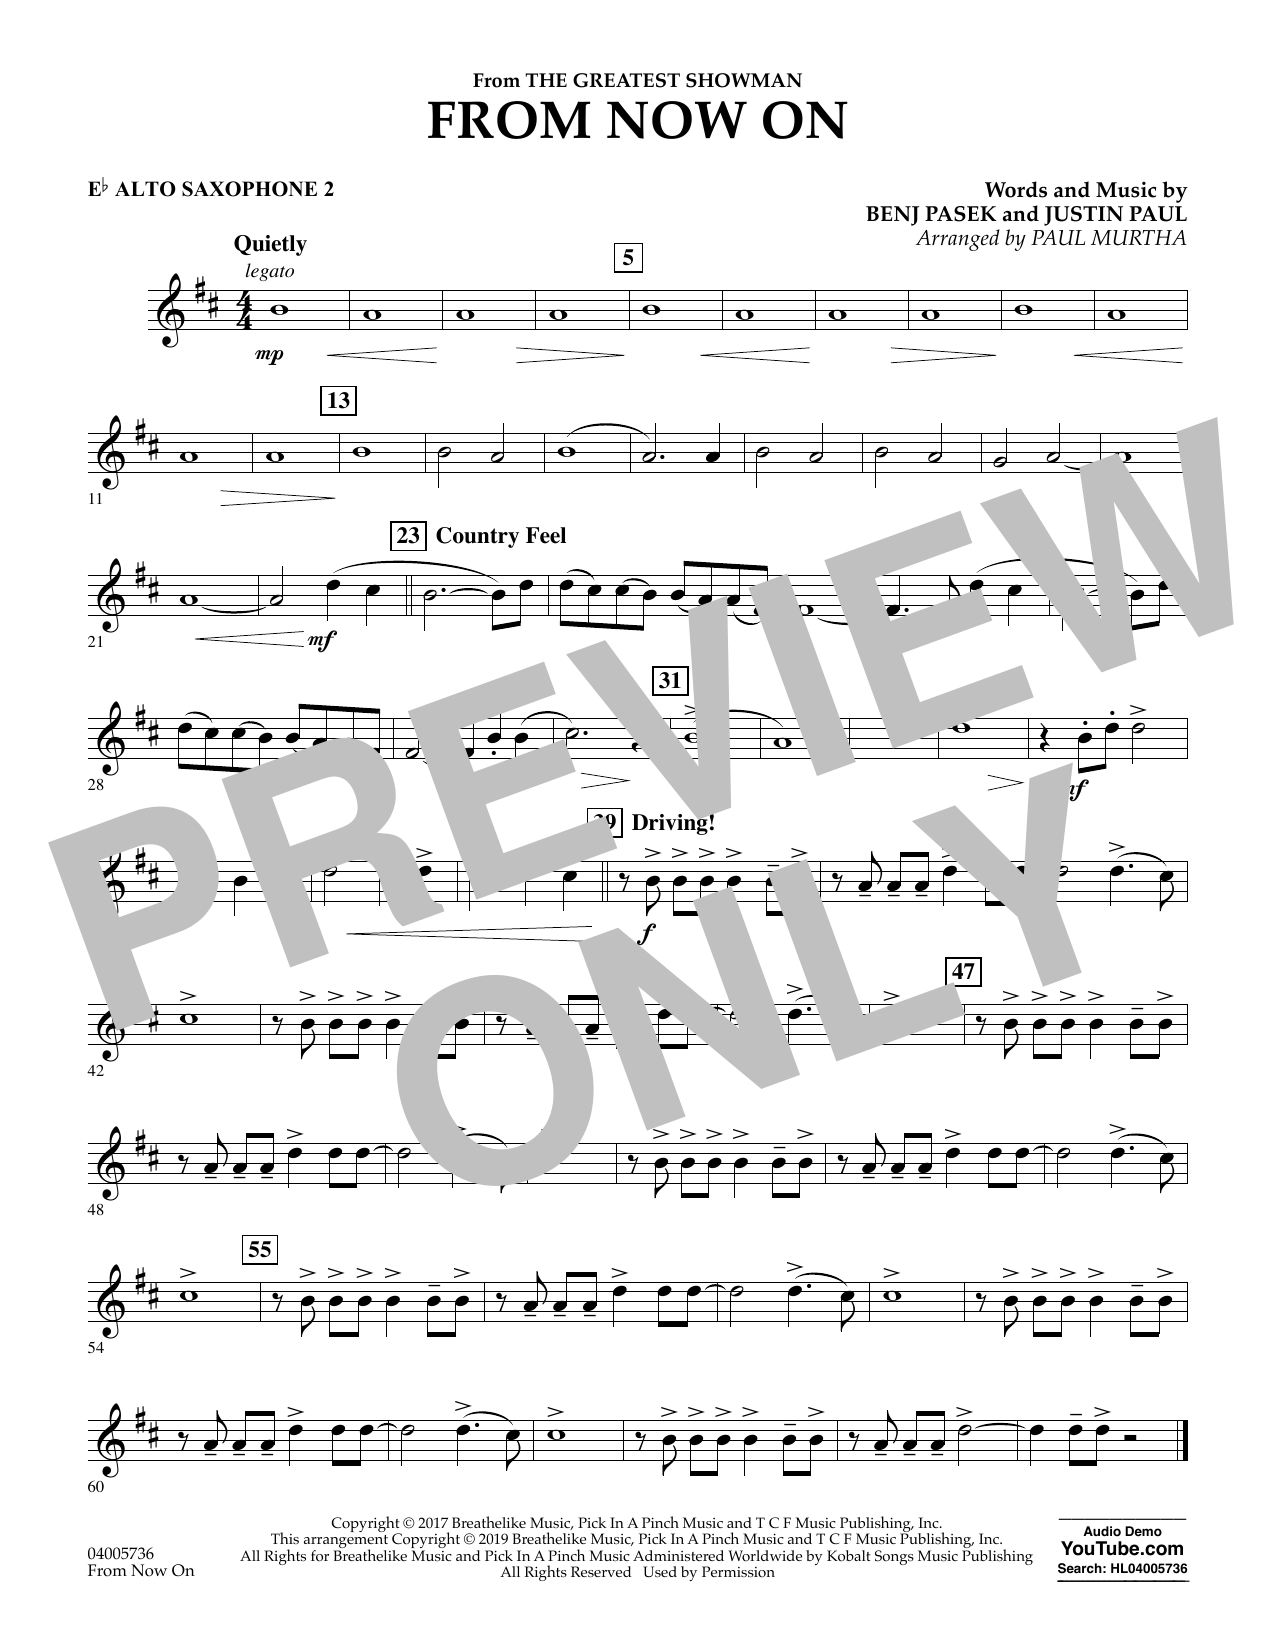 From Now On (from The Greatest Showman) (arr. Paul Murtha) - Eb Alto Saxophone 2 (Concert Band)